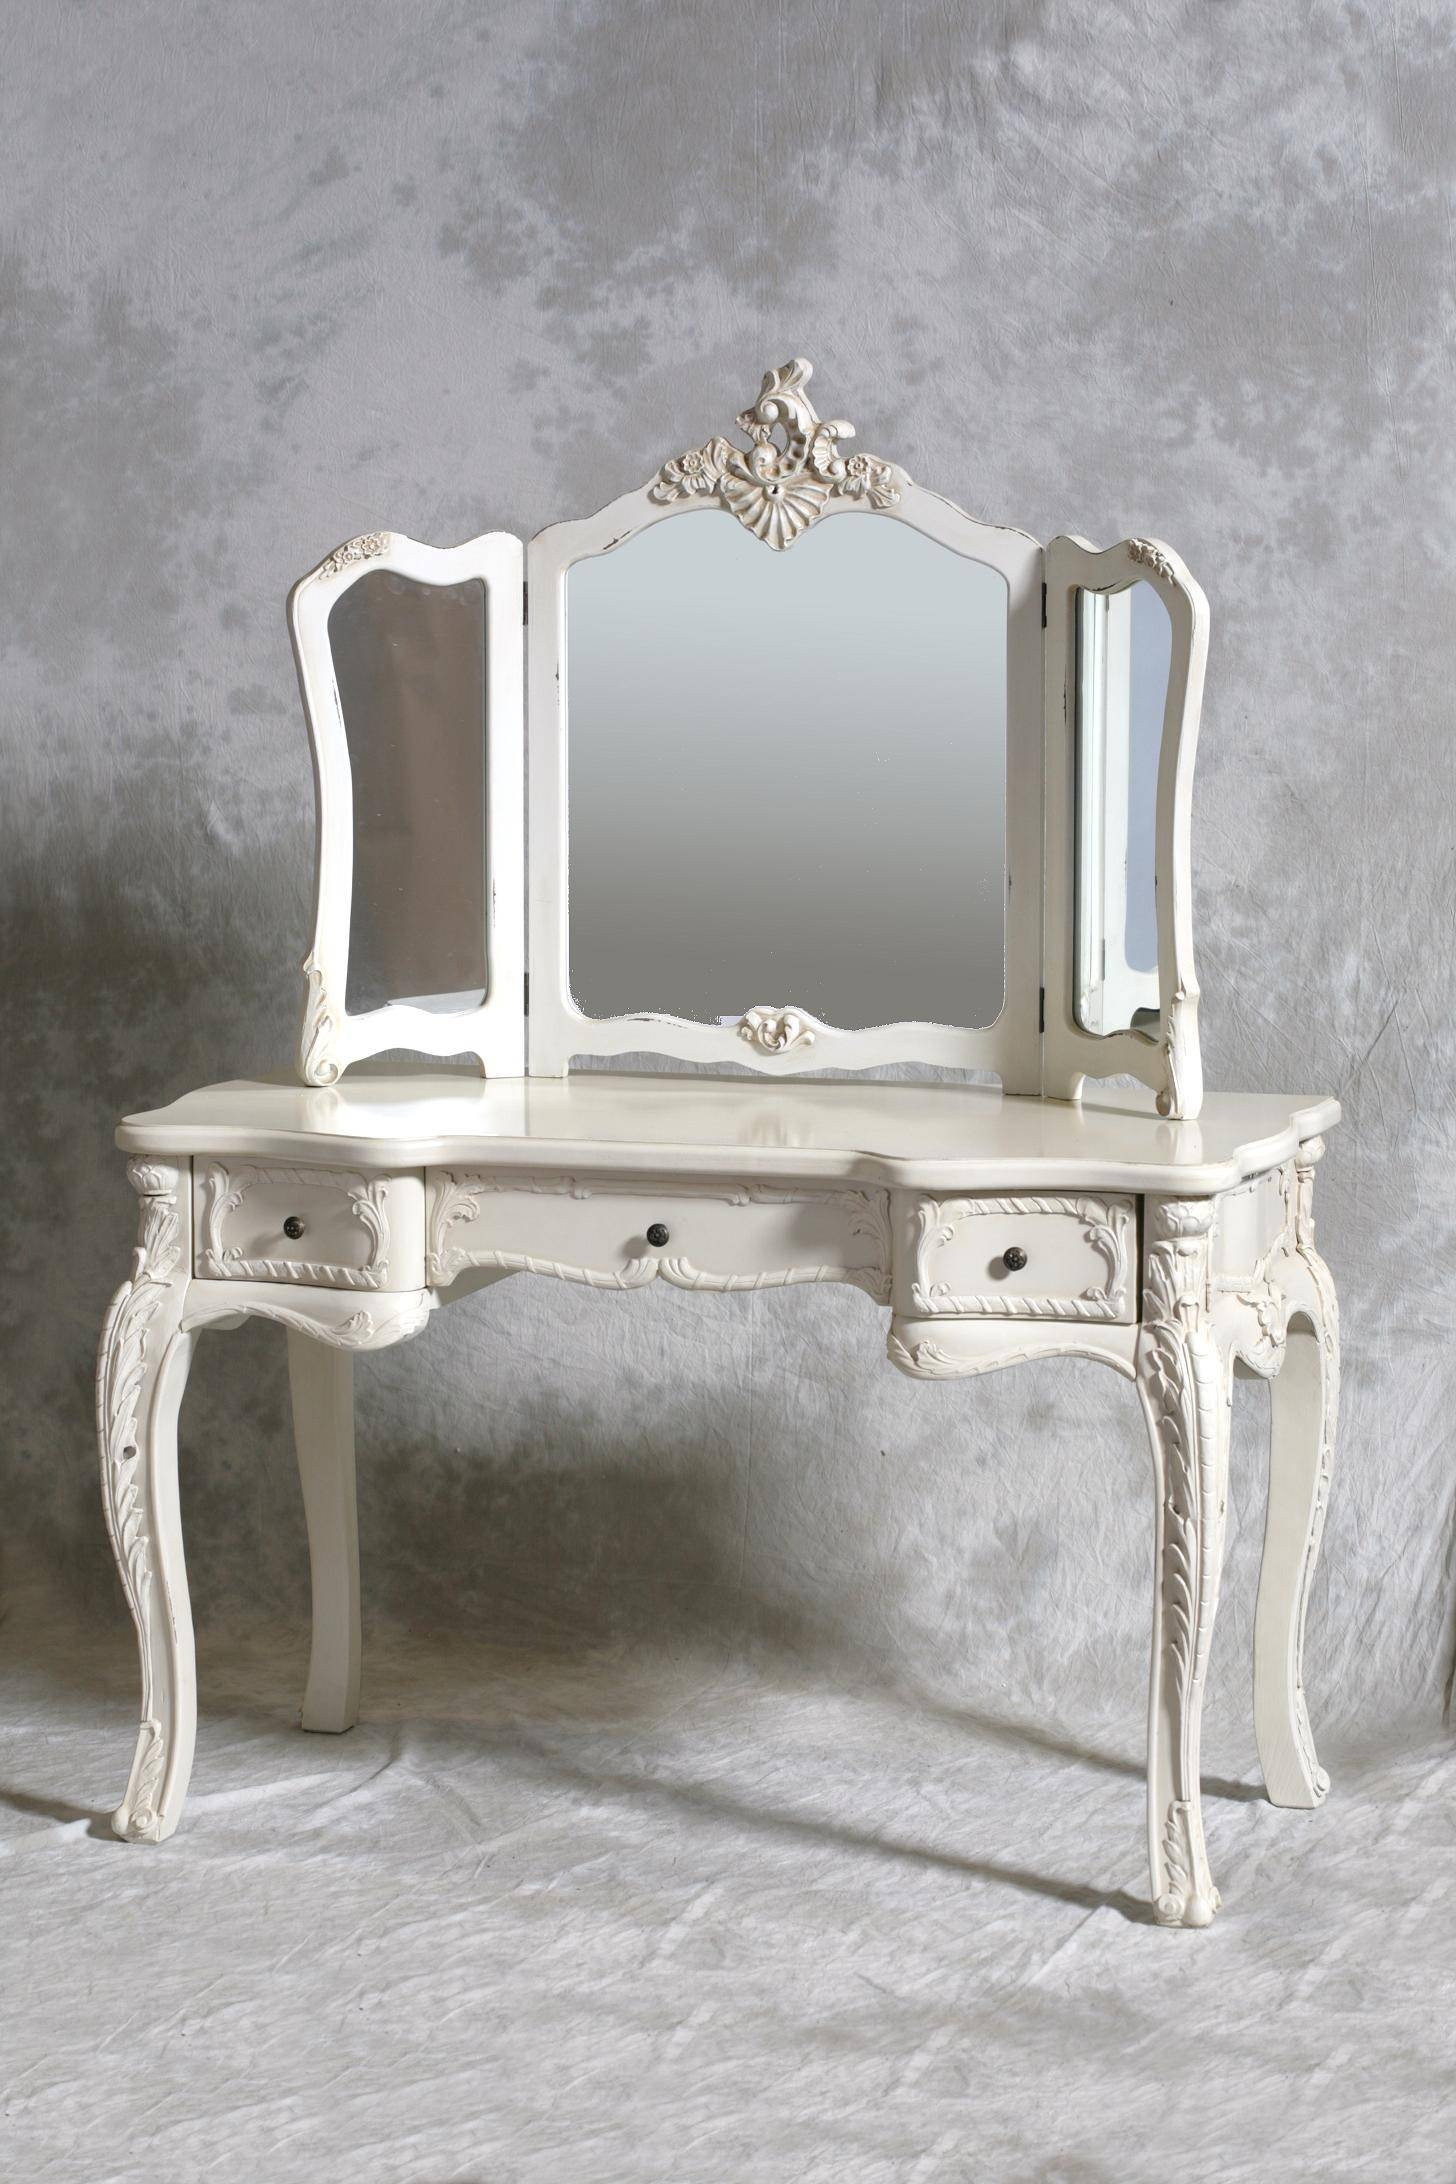 Antique Makeup Vanity With Mirror 92 Stunning Decor With Vintage Regarding Vintage White Mirrors (Photo 9 of 25)